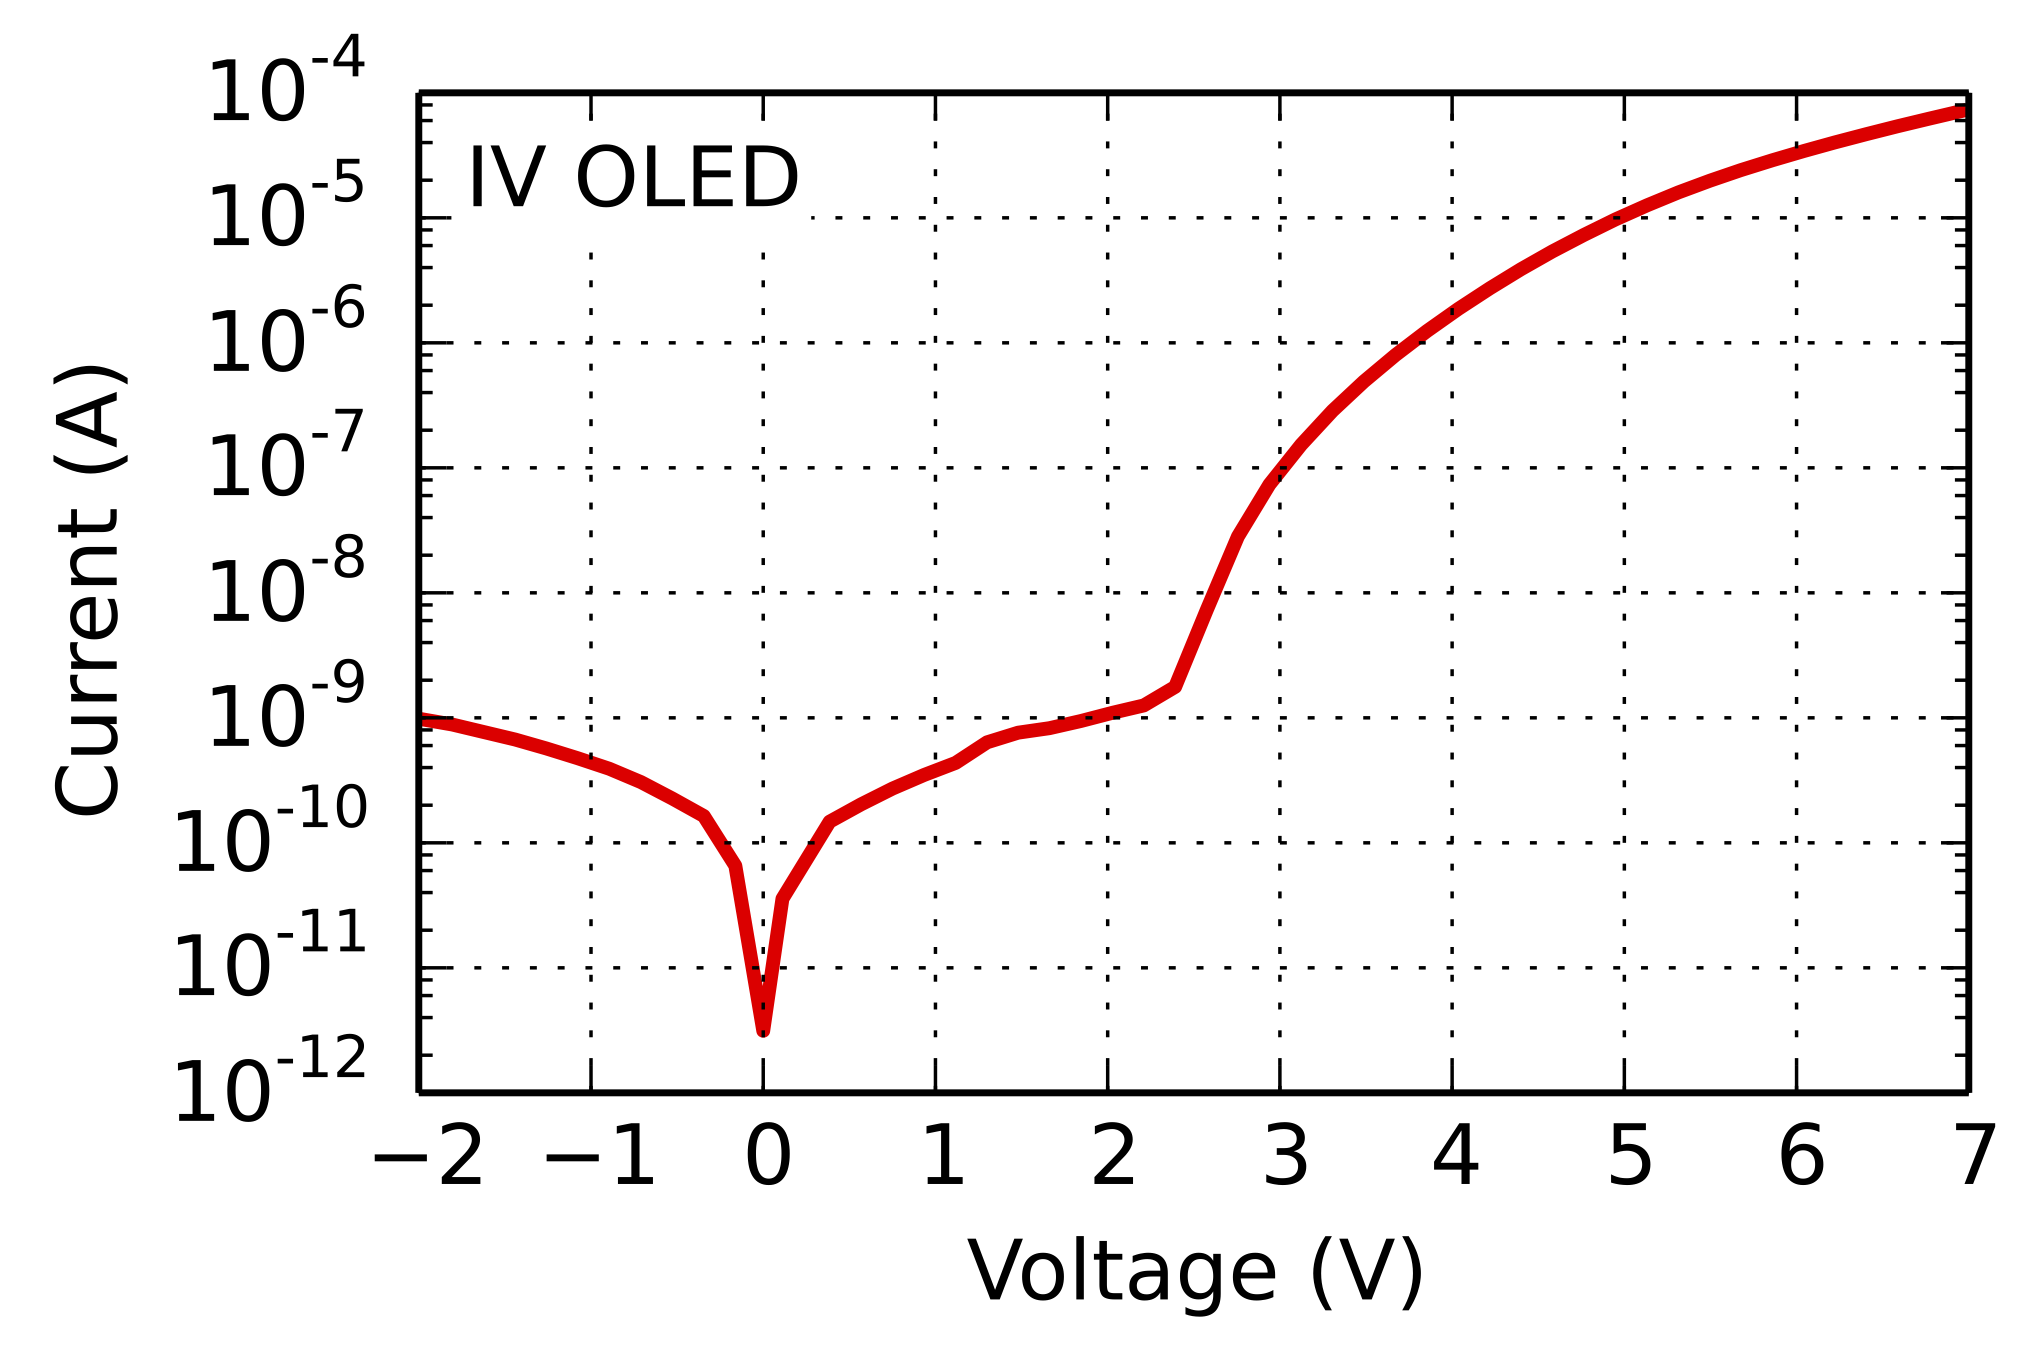 current-volage characterization of oleds and solar cells